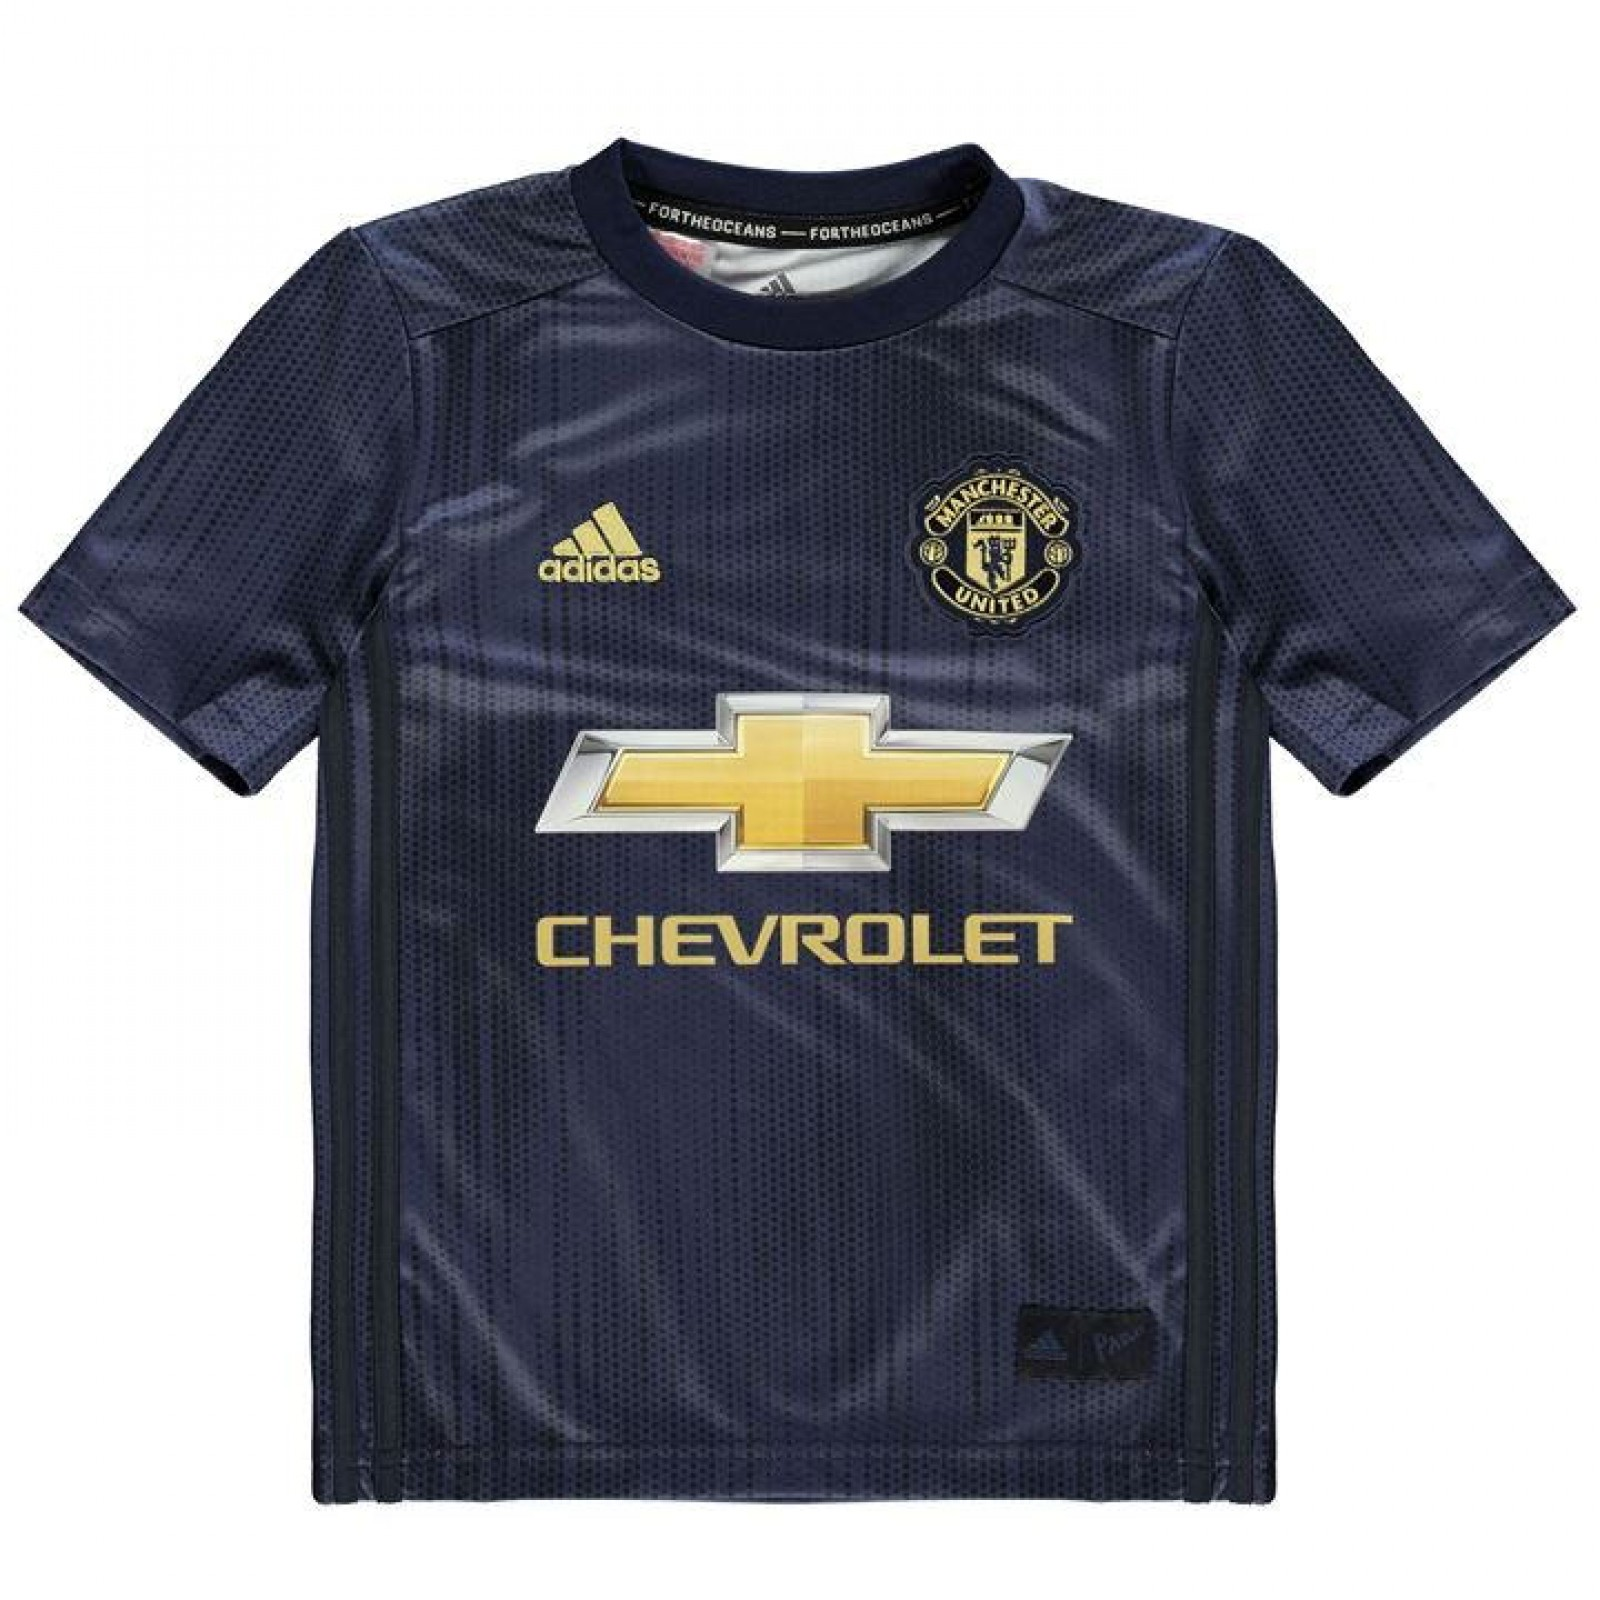 huge discount 3fe1e c0241 Childrens Manchester United Third Kit 2018/19 from £31.99 ...